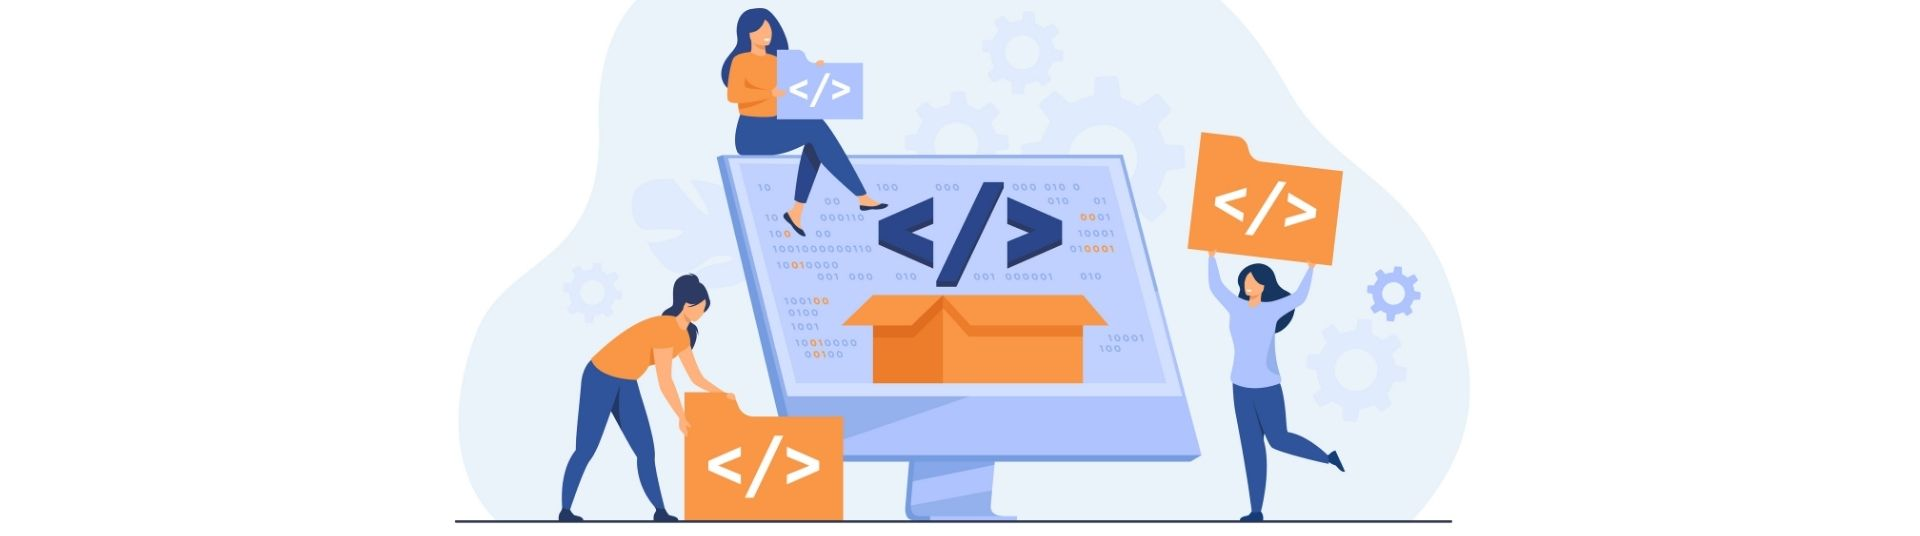 UI and UX design challenges,solutions for web application development